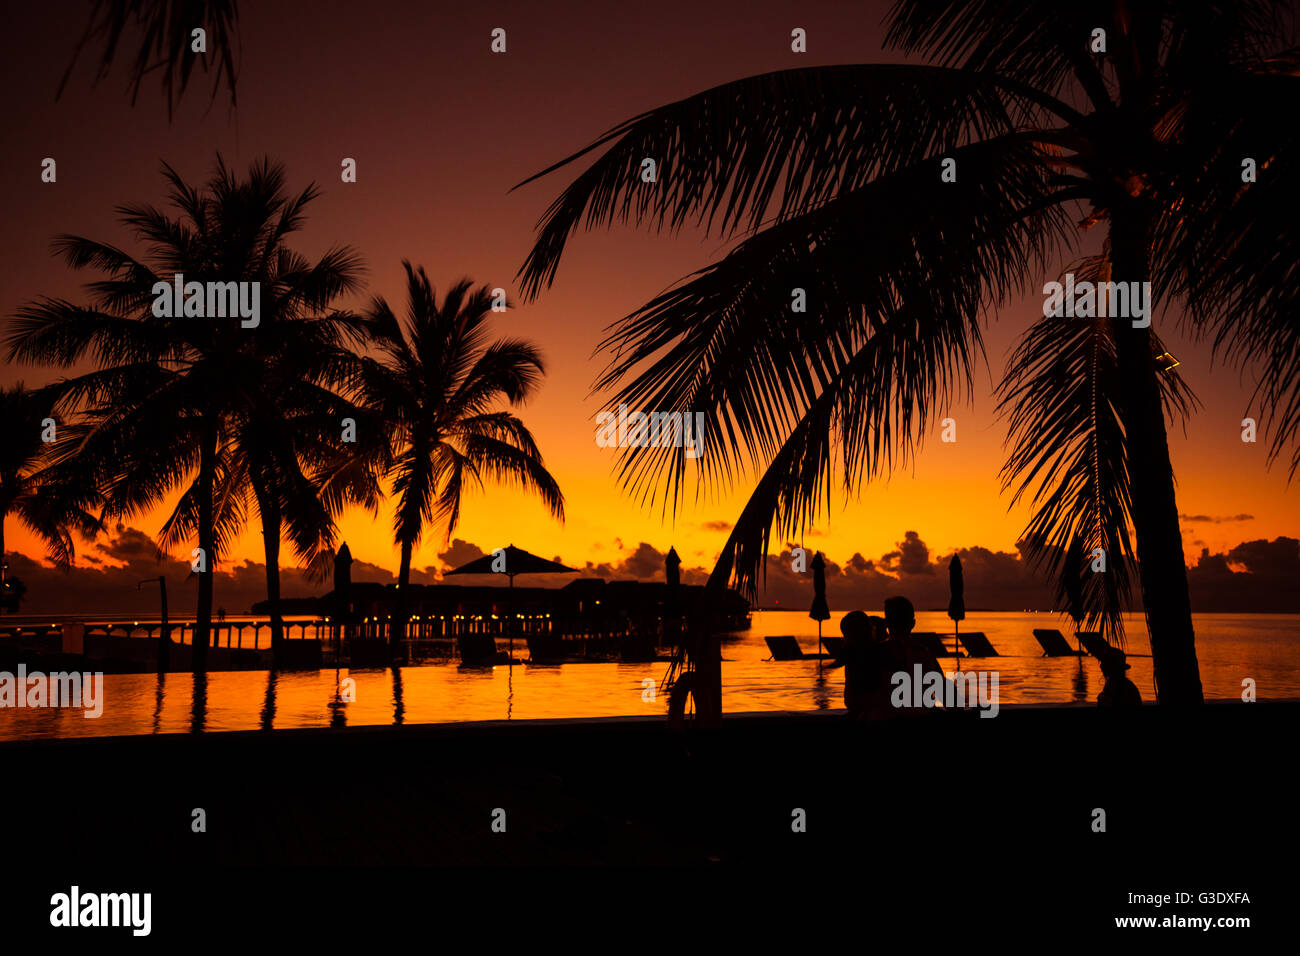 Tropical beach background with palm trees silhouette at